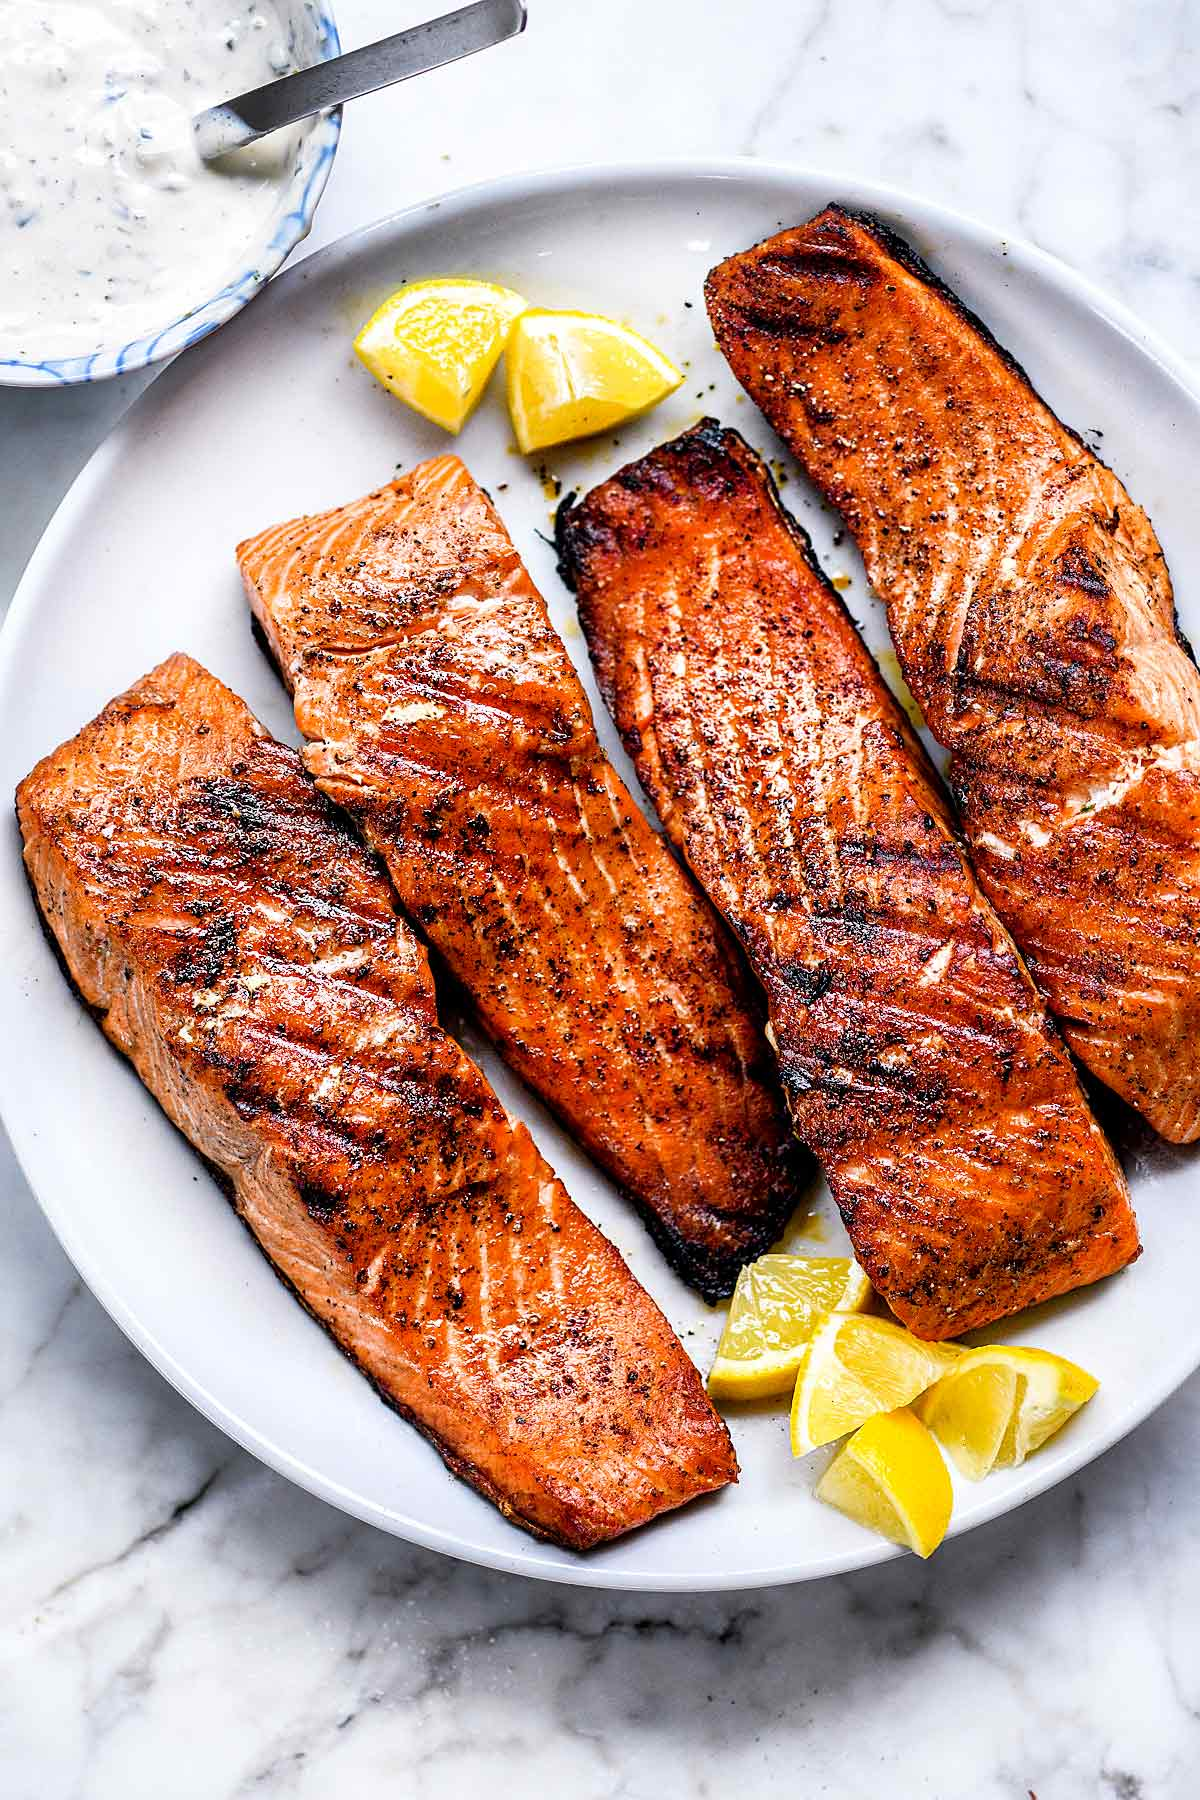 How To Make The Best Grilled Salmon Foodiecrush Com